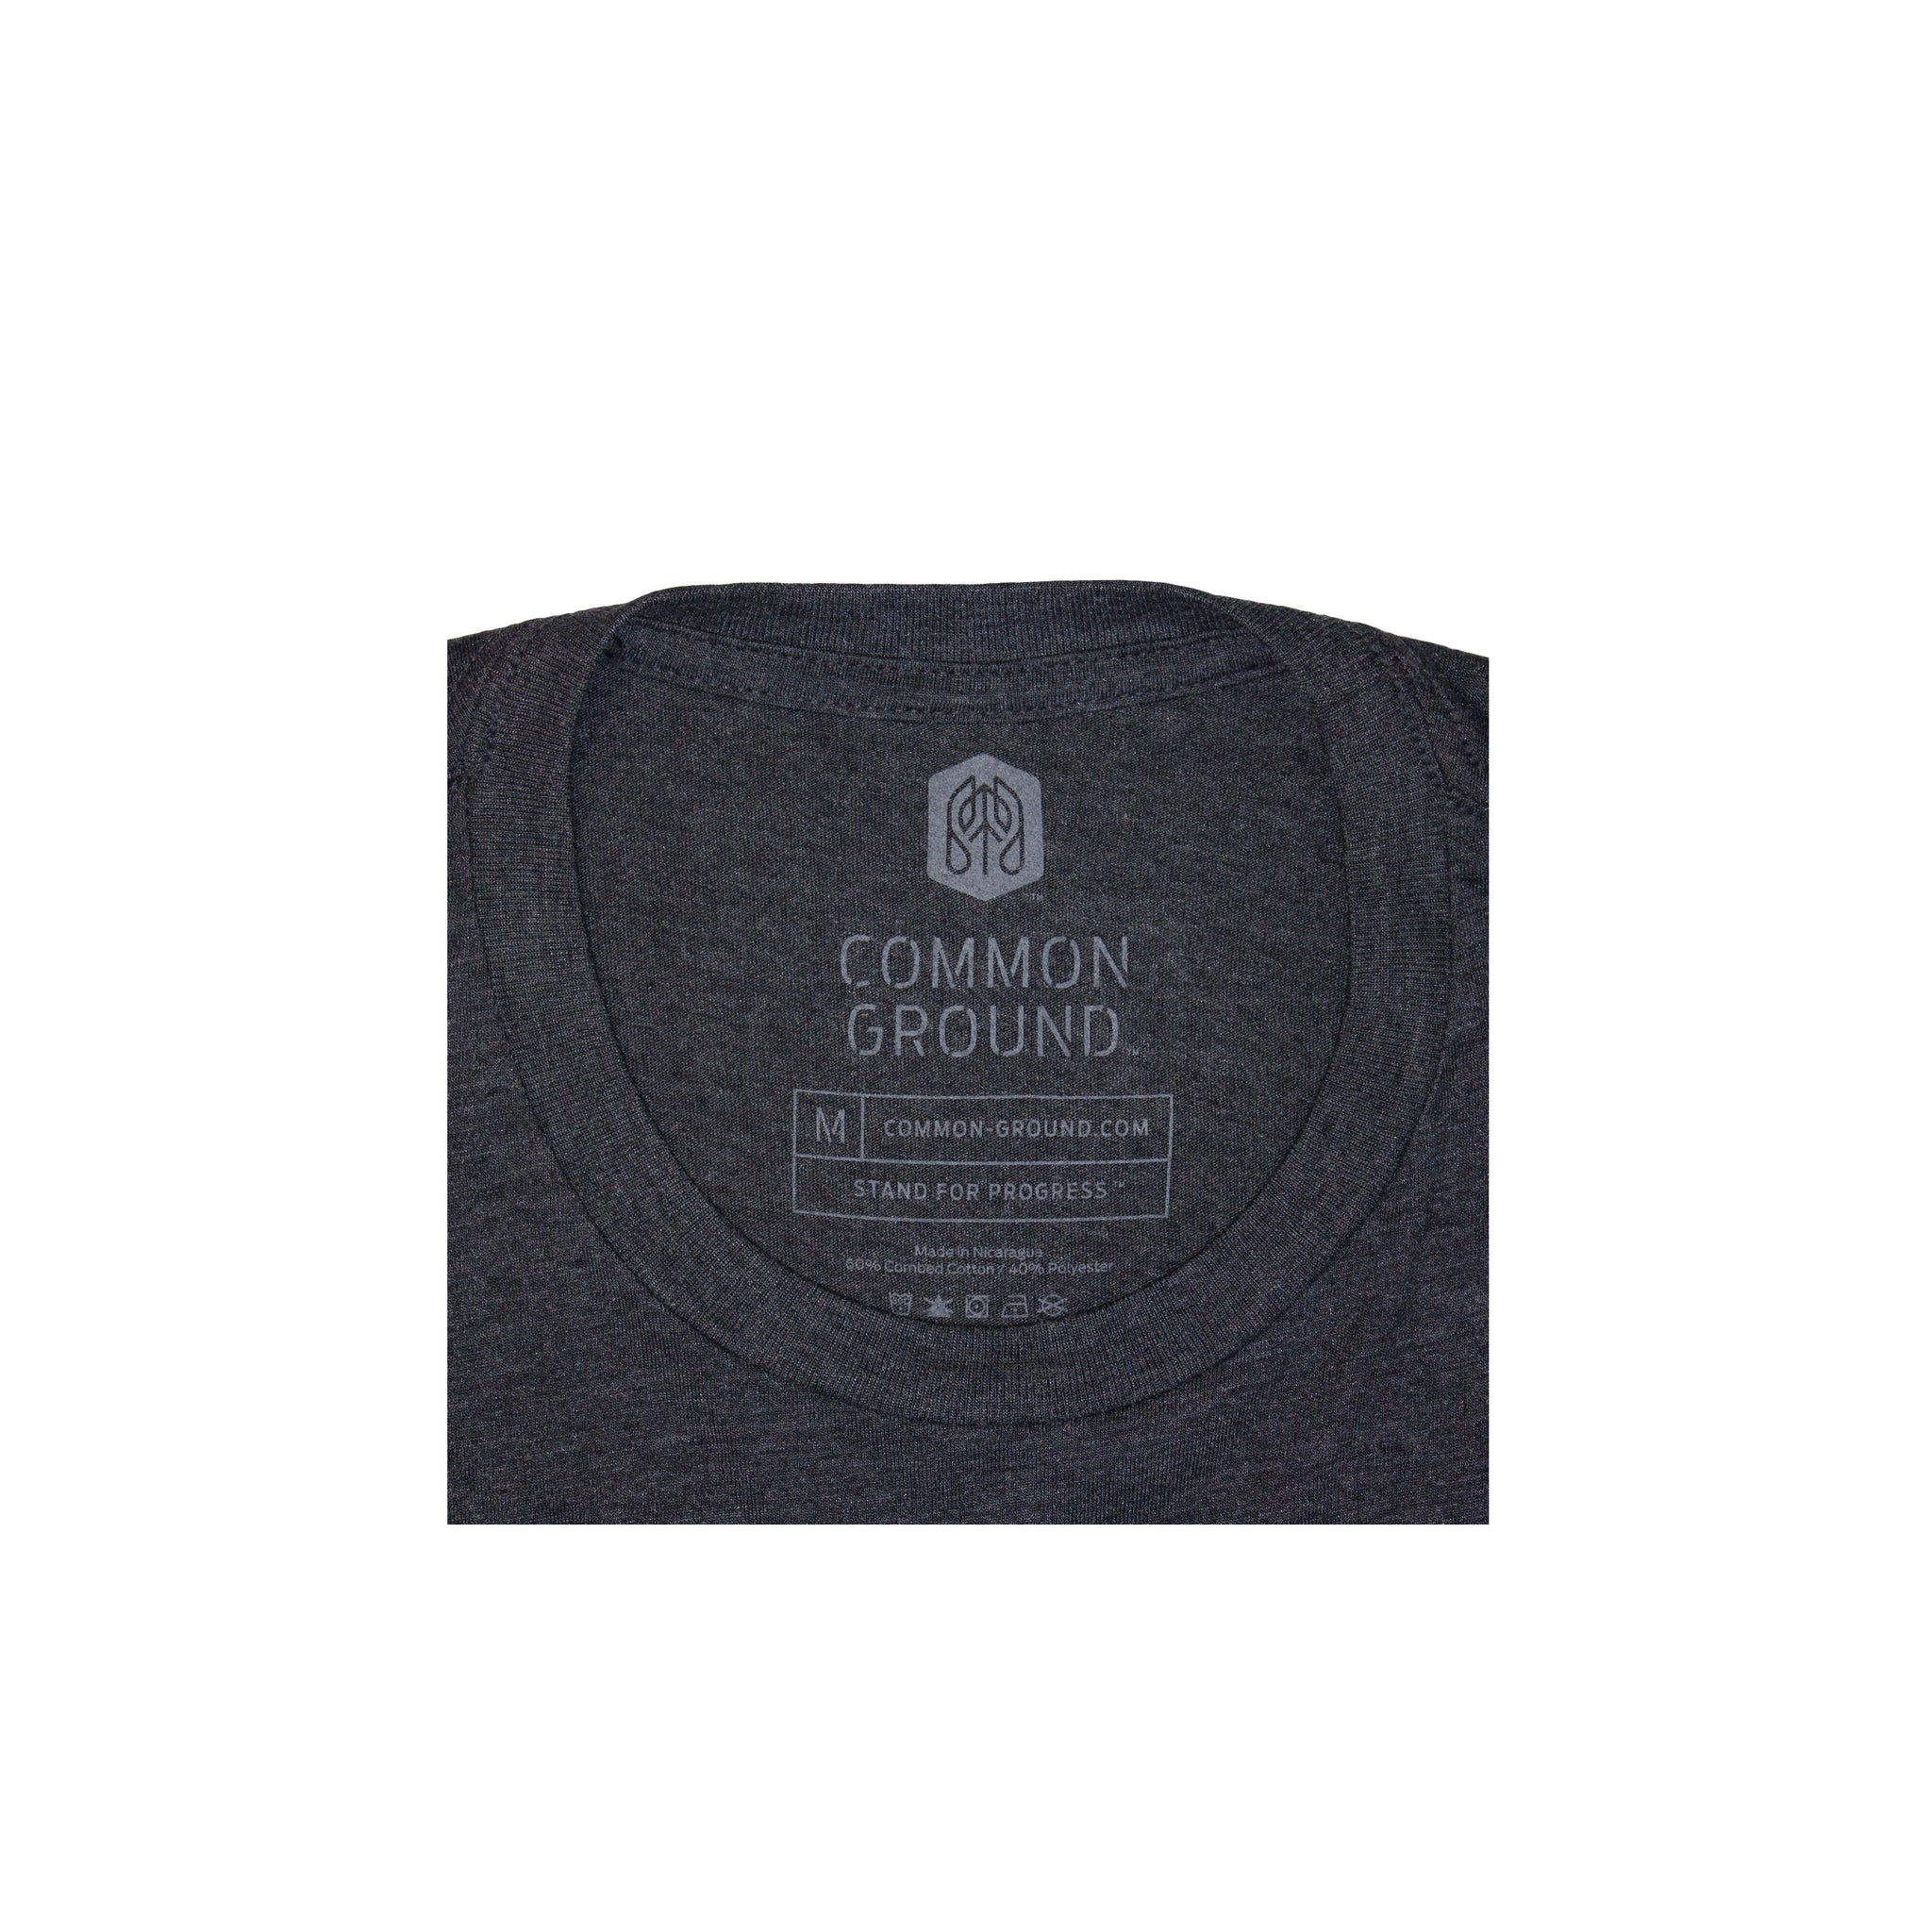 Charcoal - Stand For Progress T shirt Neck Tag View